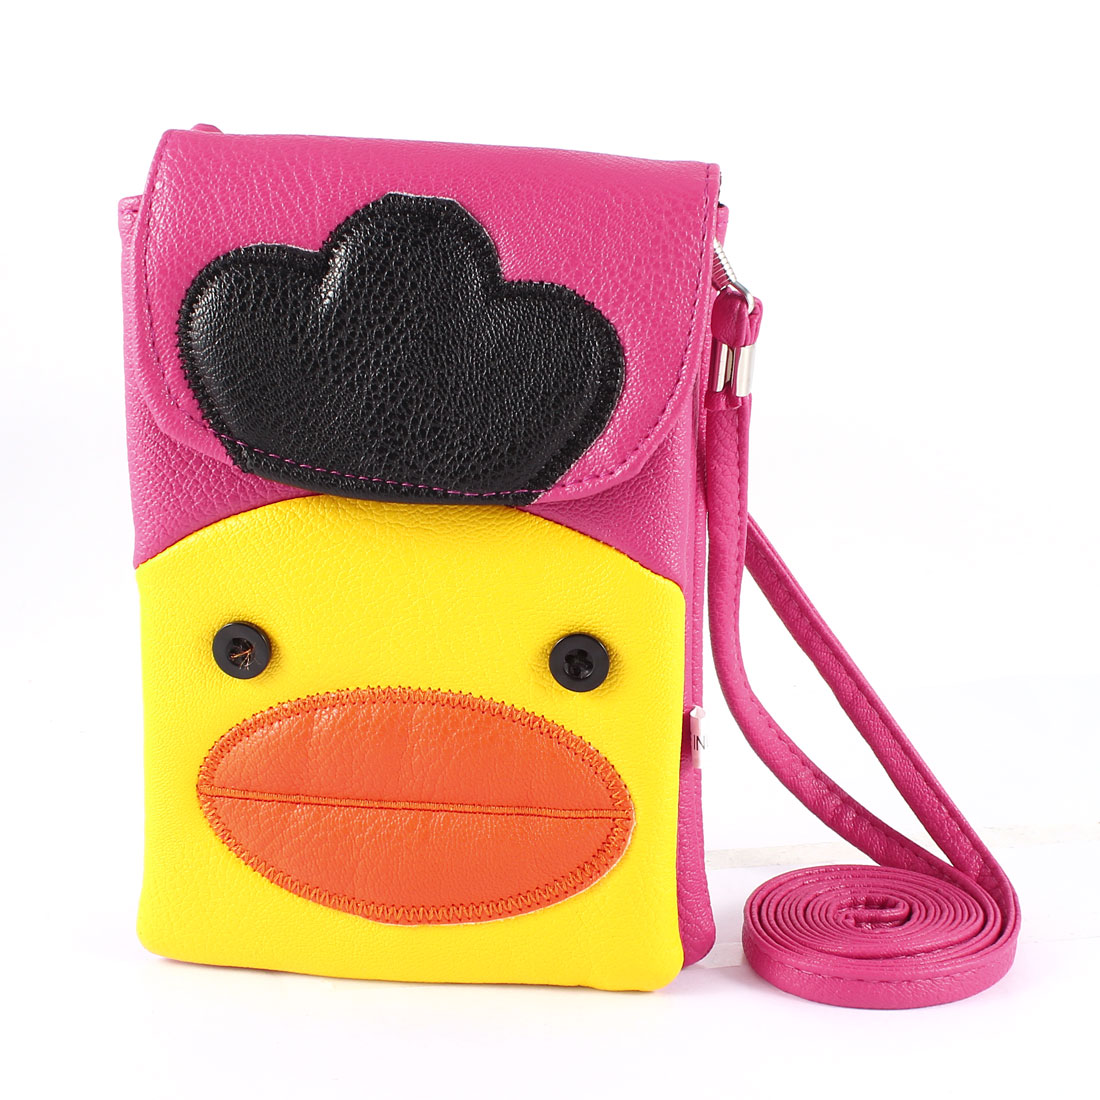 Fuchsia Yellow Duck Print  2 Compartments Coin Cell Phone Bag Purse Pouch - image 1 of 1